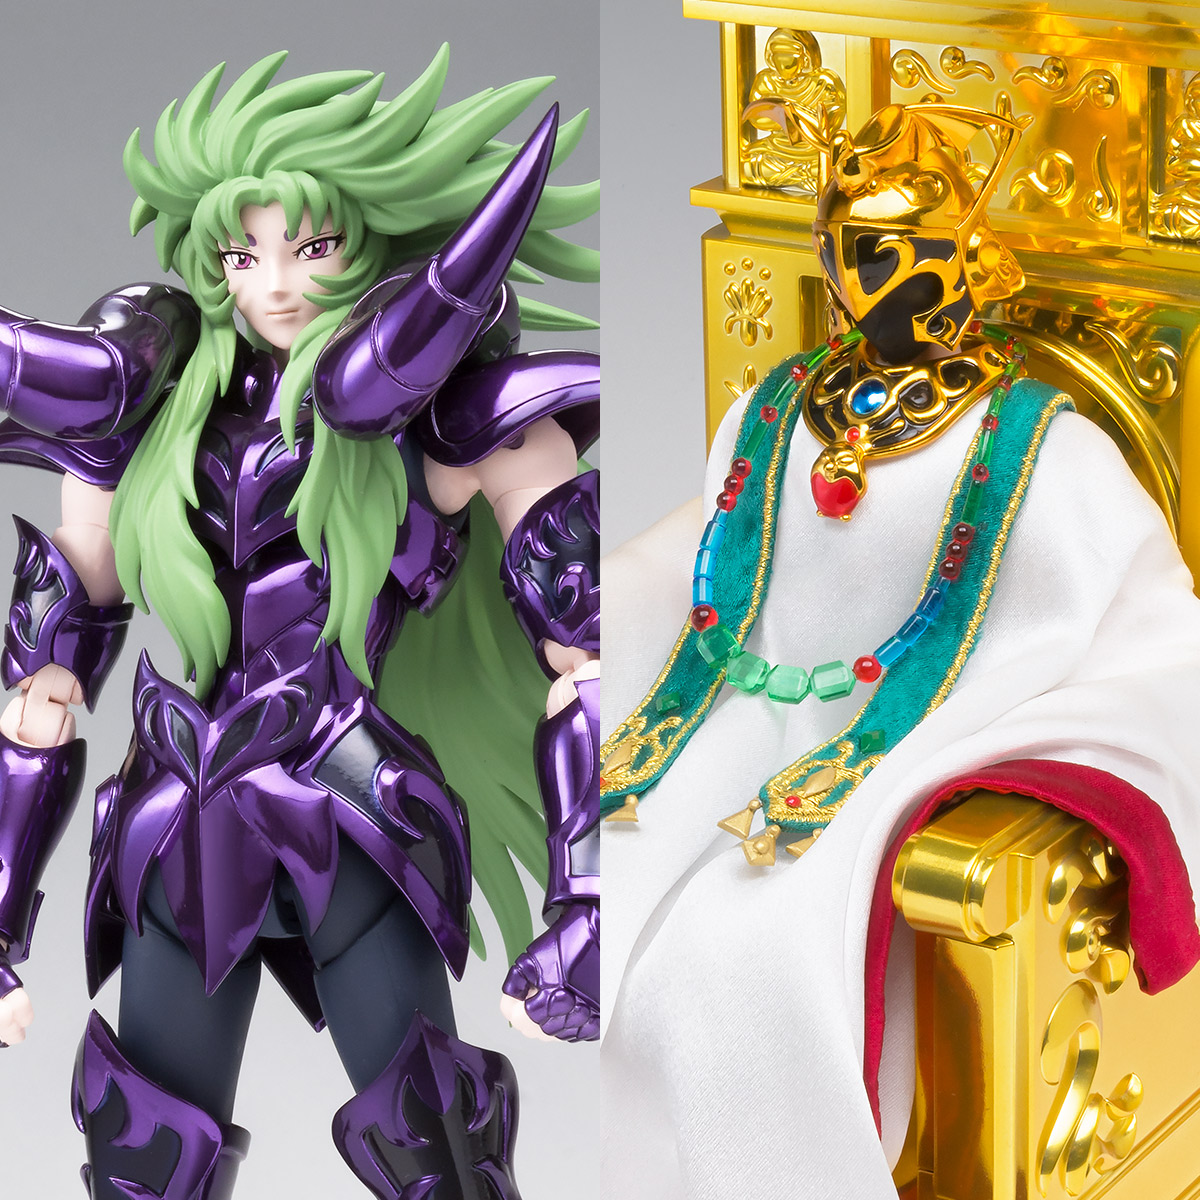 SAINT CLOTH MYTH EX Aries Shion (Surplice) & The Pope Set